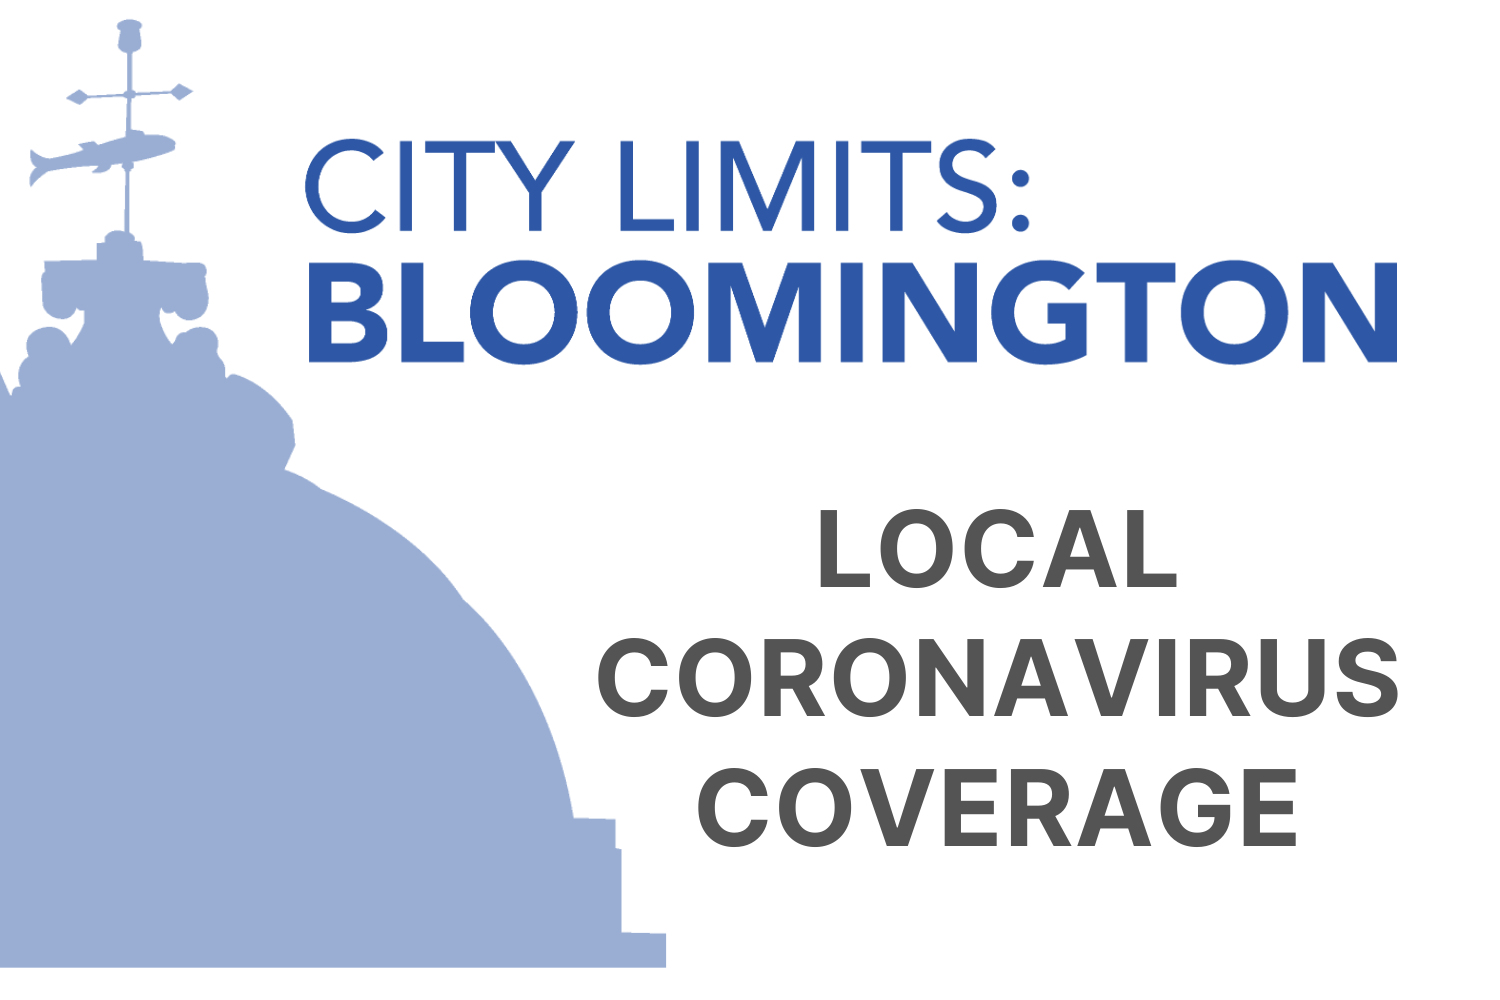 A City Limits coronavirus coverage graphic